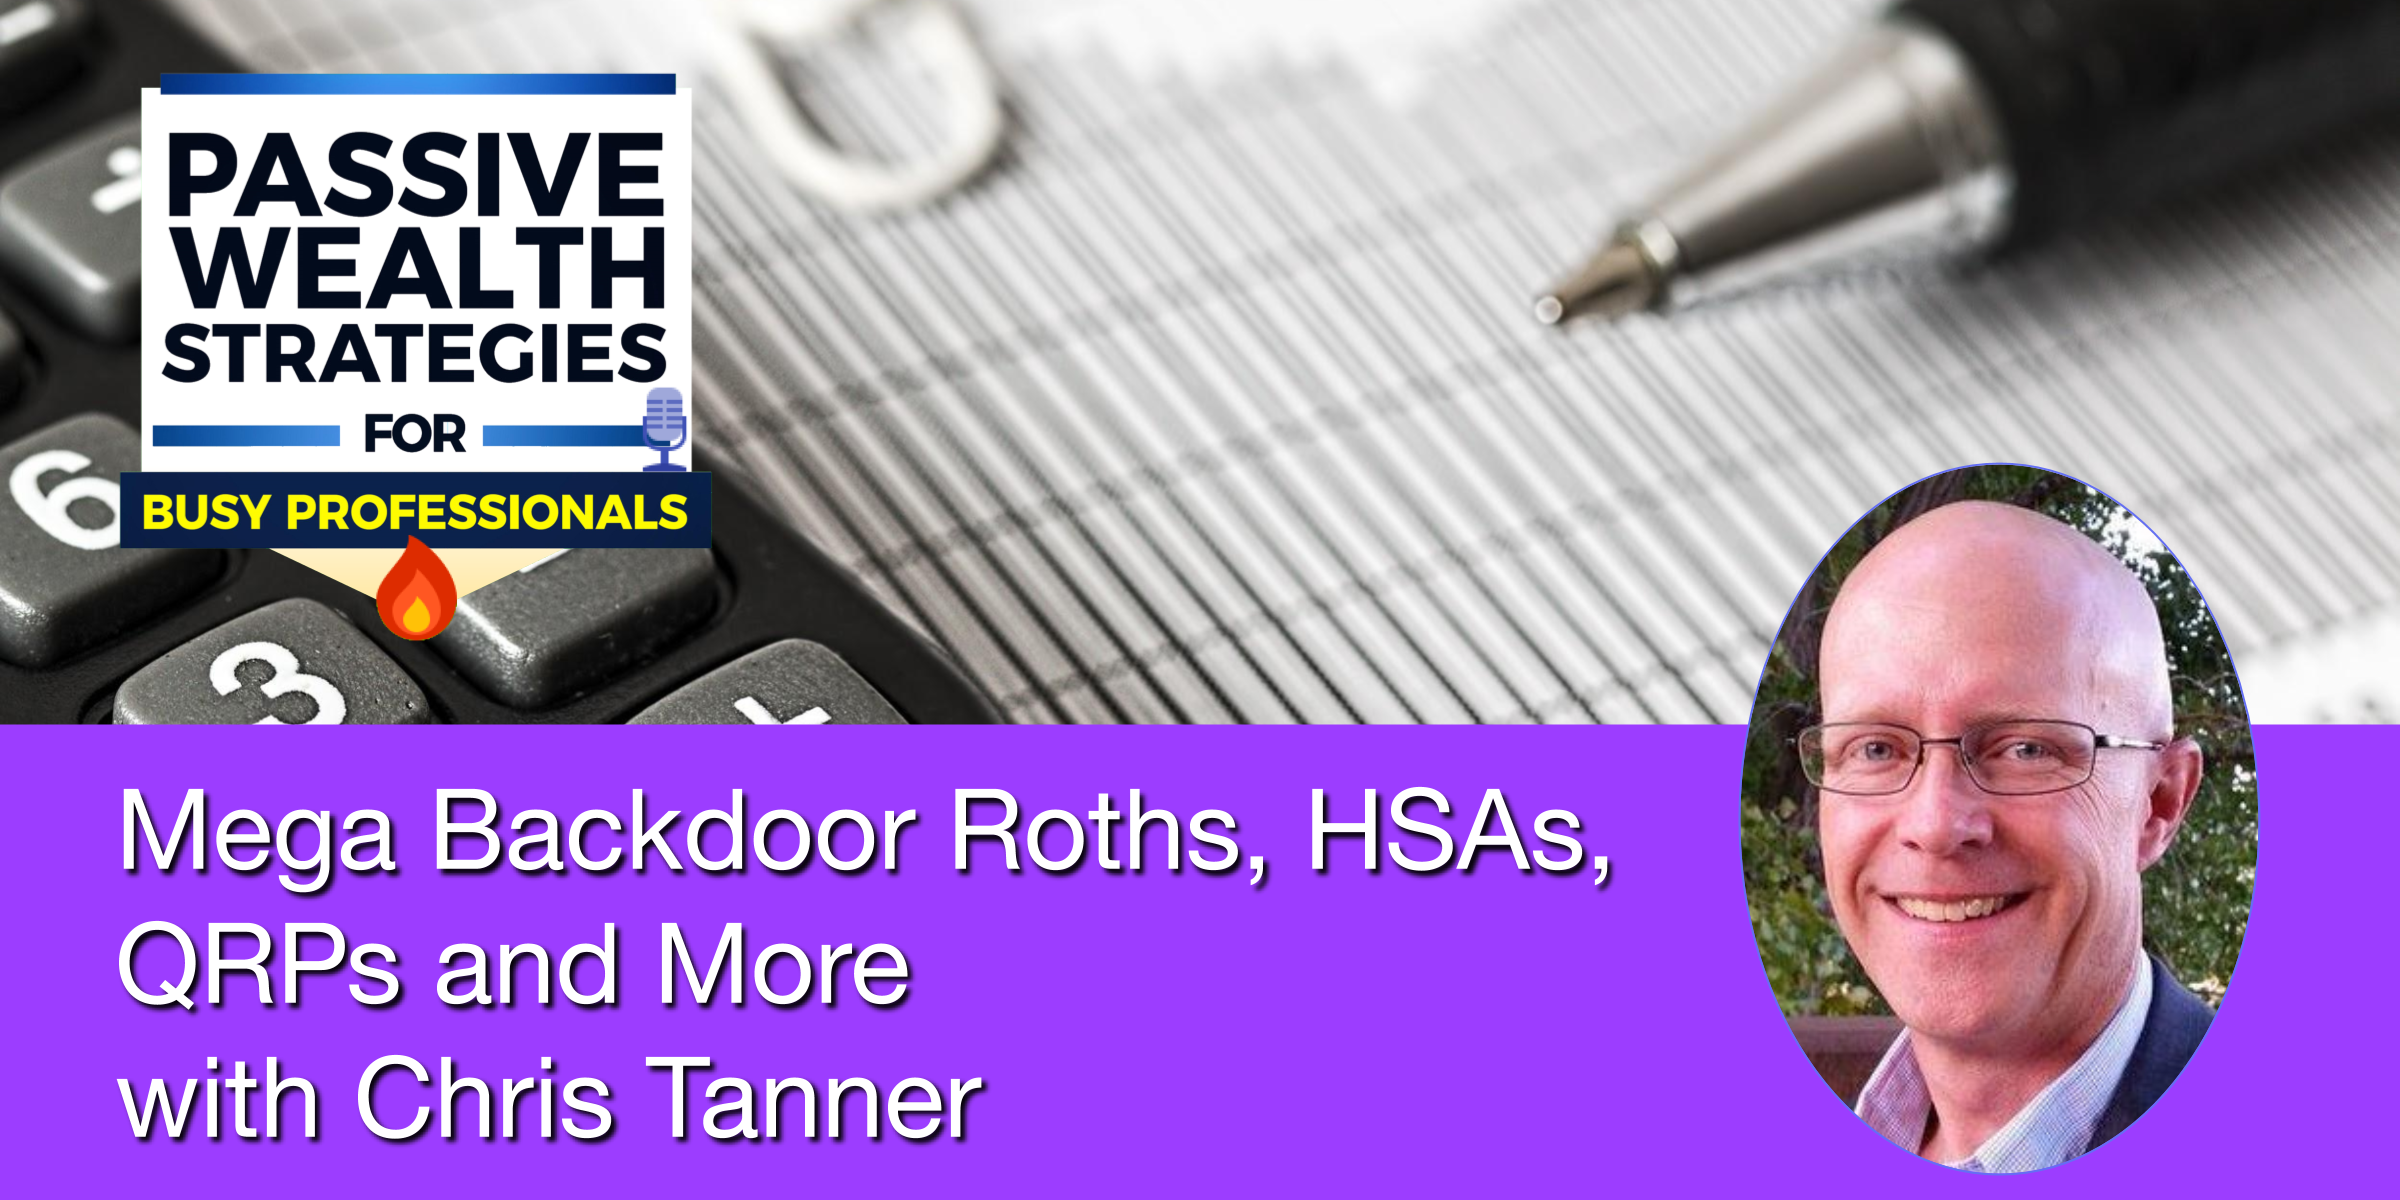 Mega Backdoor Roths HSAs QRPs and More with Chris Tanner